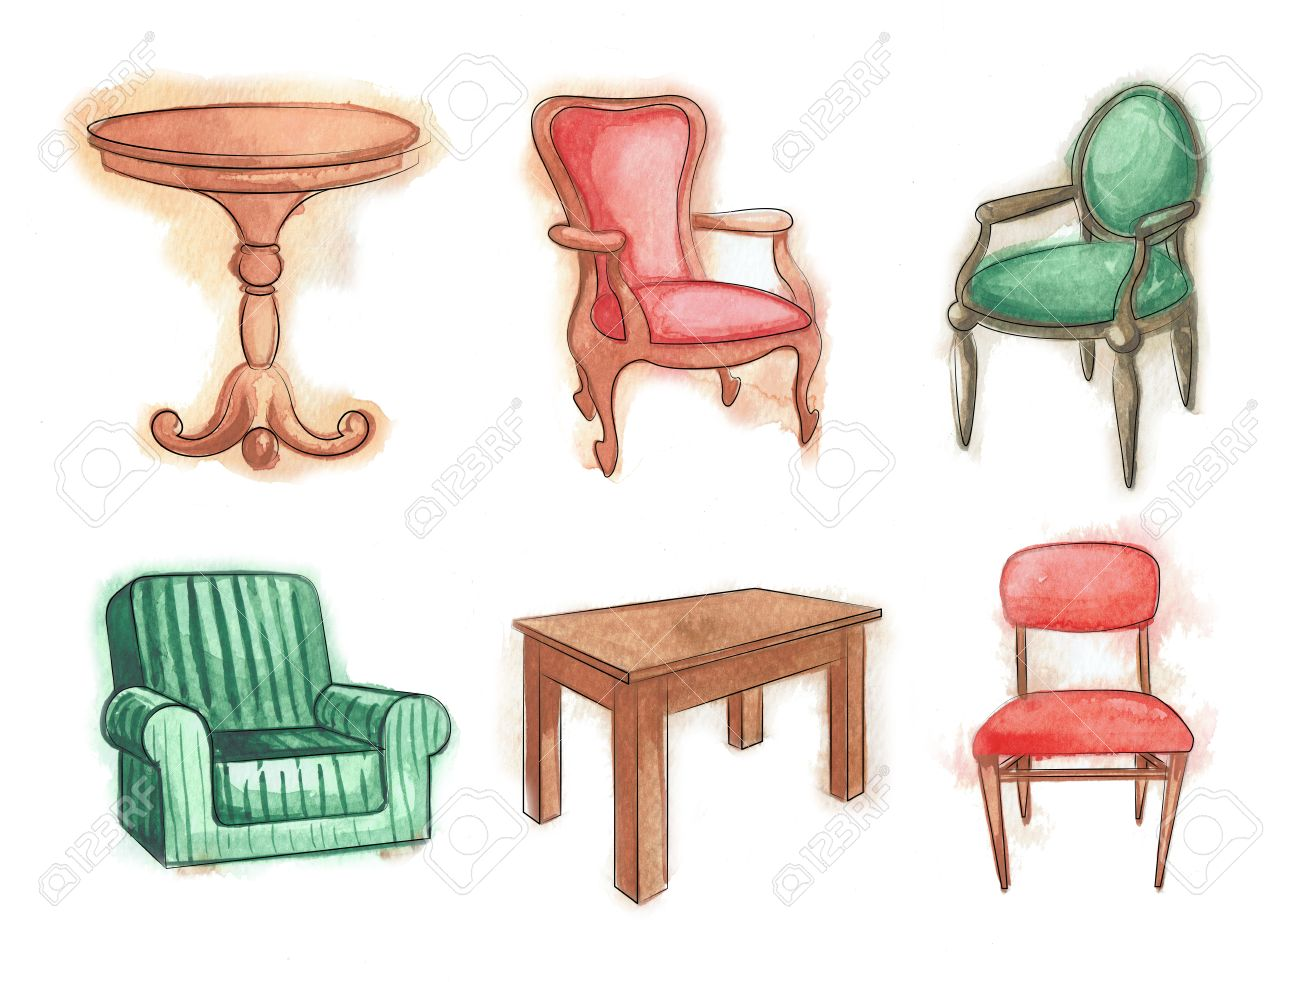 Tables and chairs cartoon - Chairs And Tables Wooden Furniture Watercolor Sketch Set Isolated Stock Photo 59587248